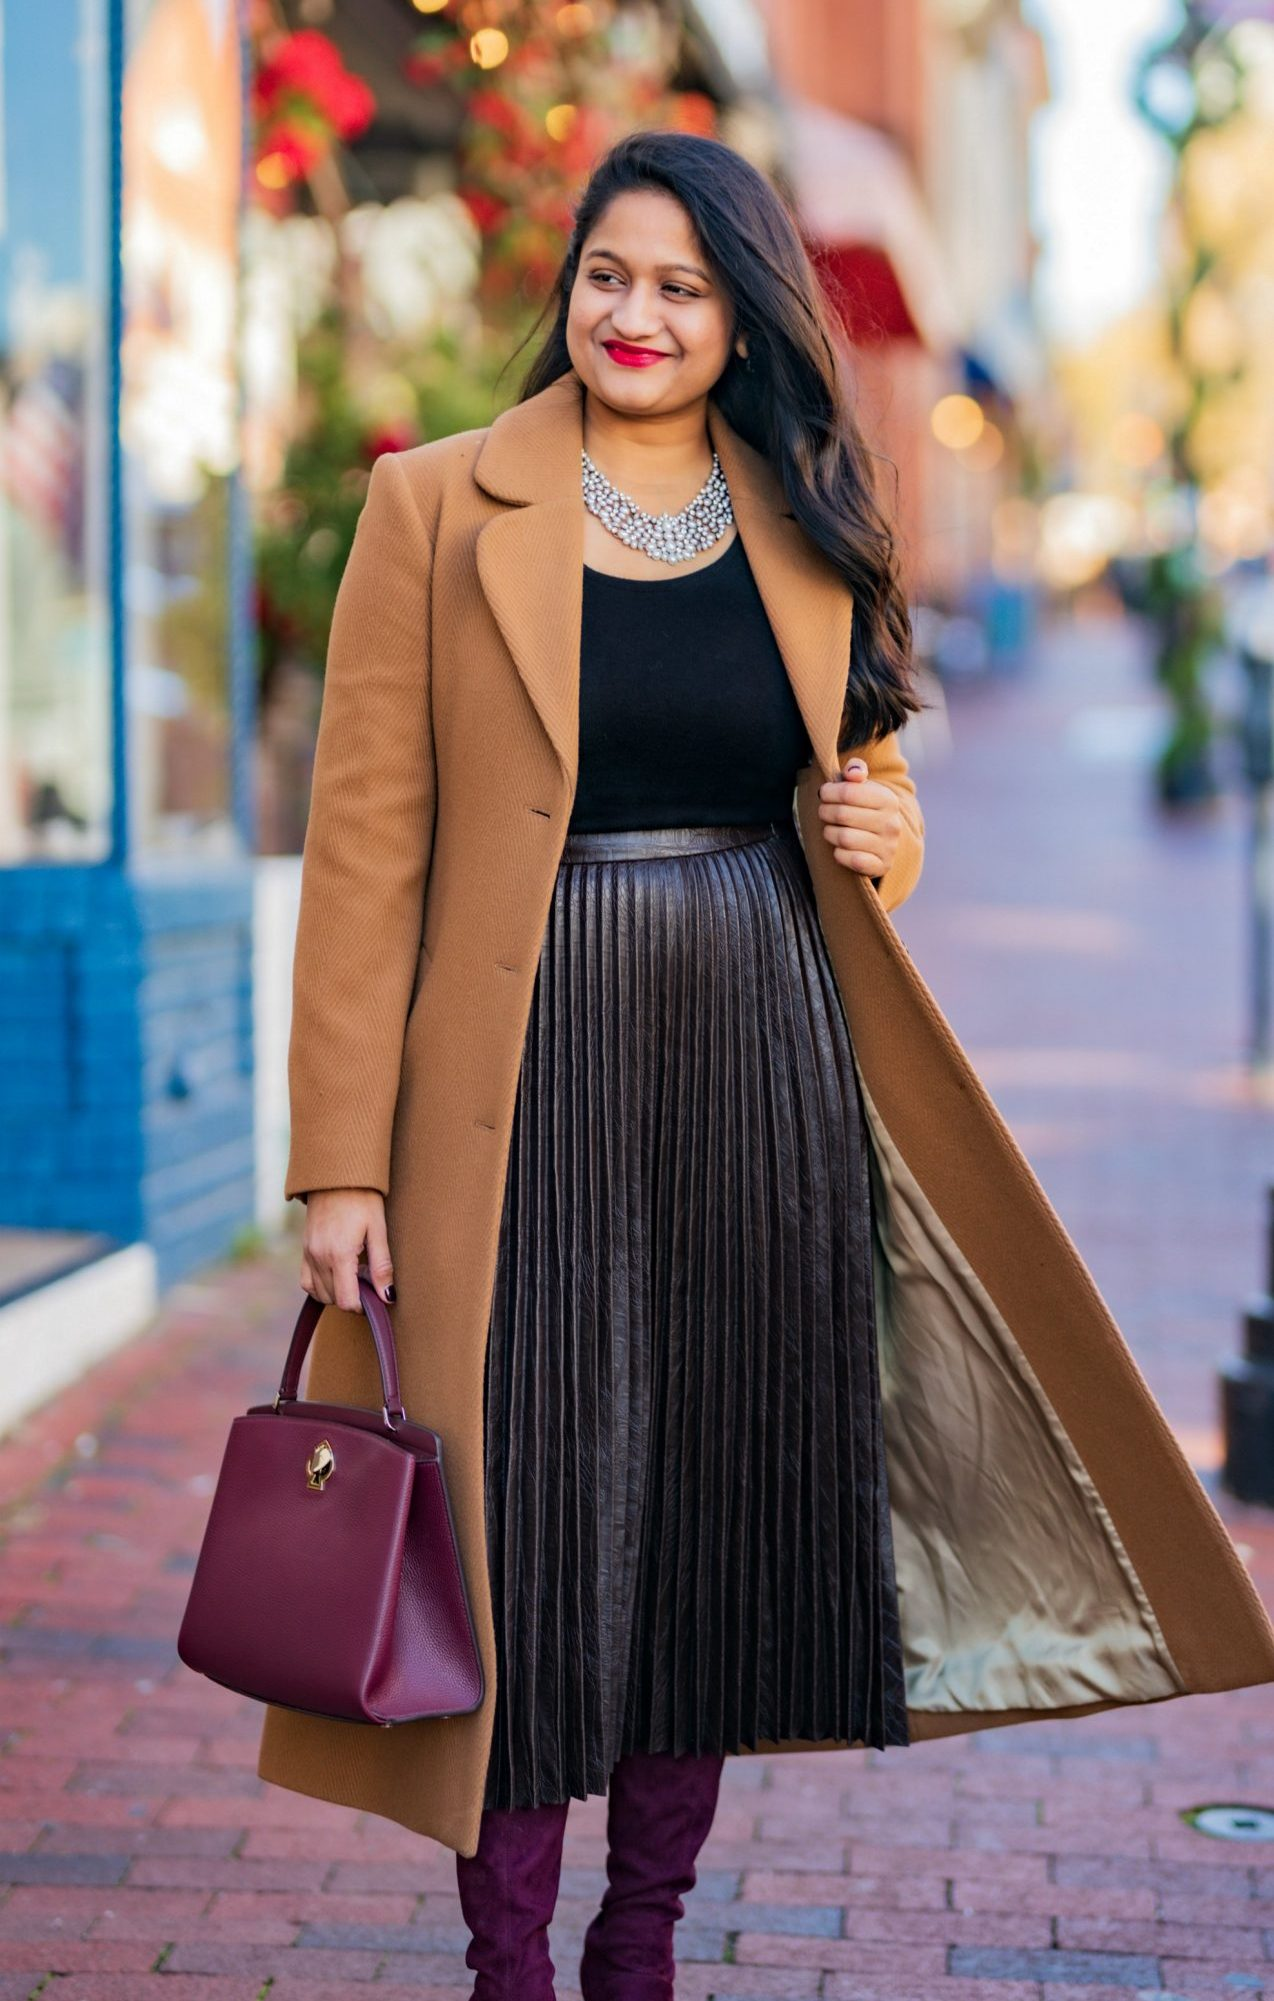 10 Winter Essentials For a Cozy Look featured by top Maryland modest fashion blogger, Dreaming Loud: image of a woman wearing and other stories A-Line Wool Blend Belted Coat, Madewell Puff-Sleeve Scoopneck Top,Atlantic-Pacific Pleated Croc Faux Leather Midi Skirt, Boden burgundy knee high boots,Kate Spade Romy Leather Turnlock Satchel Bag.